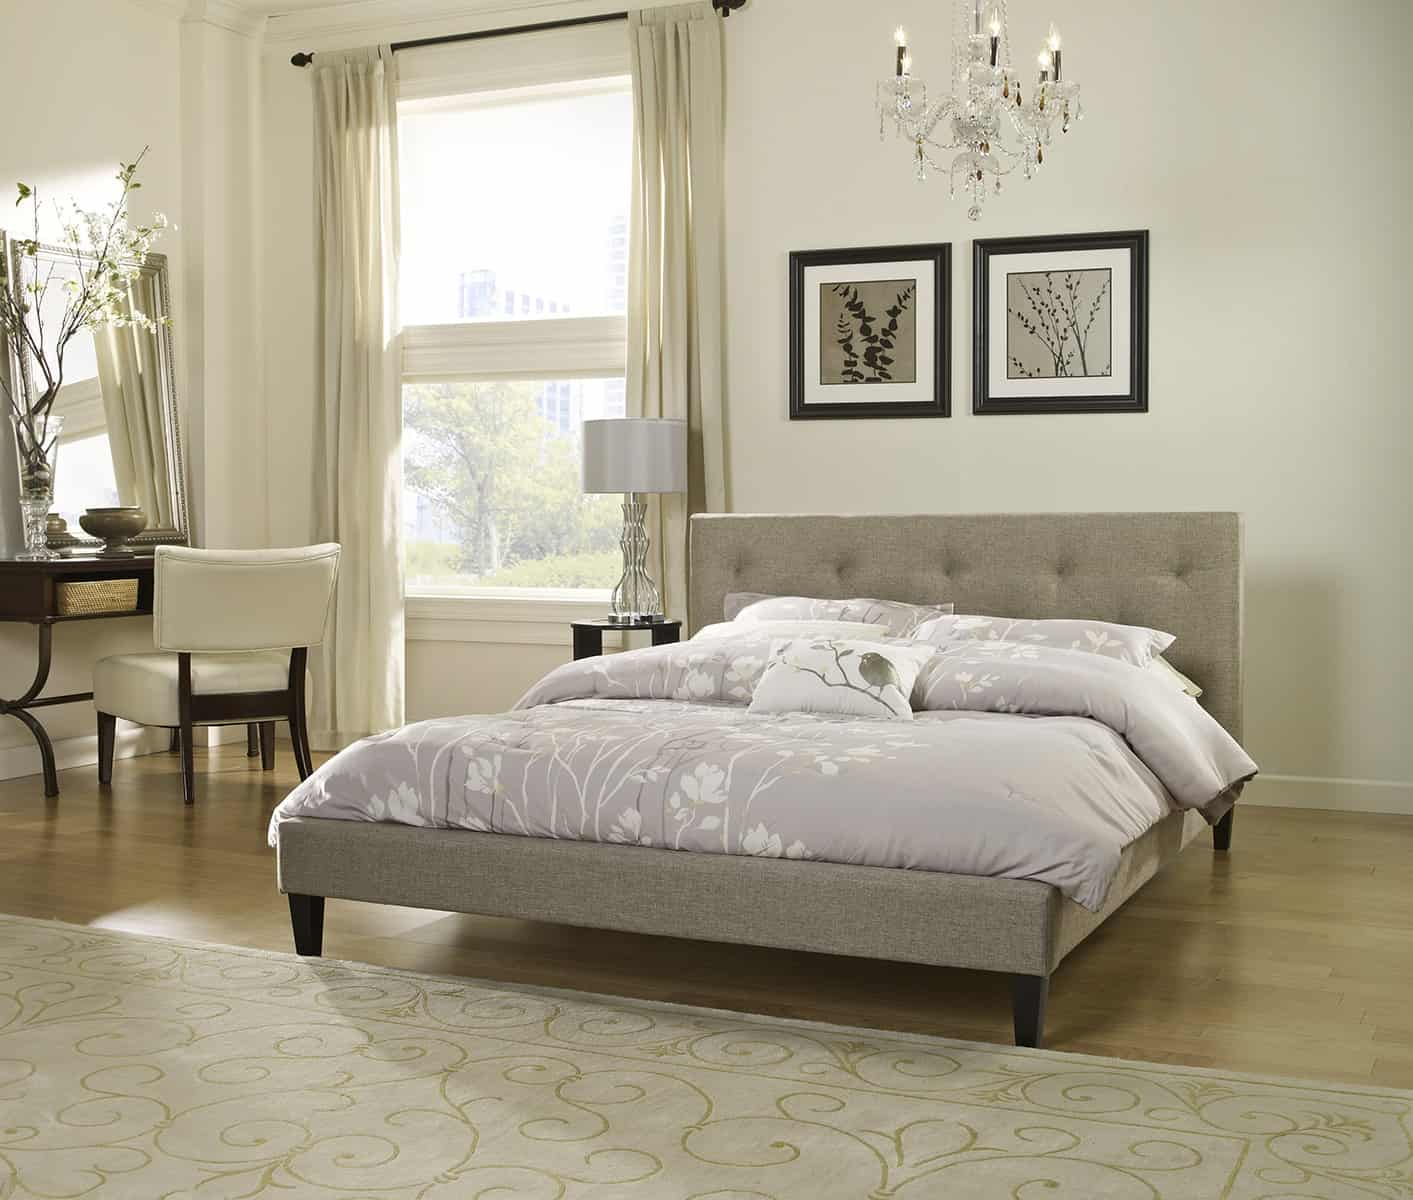 Get a platform bed that is in a neutral color this will allow you to fill the room with other furniture of multiple colors.